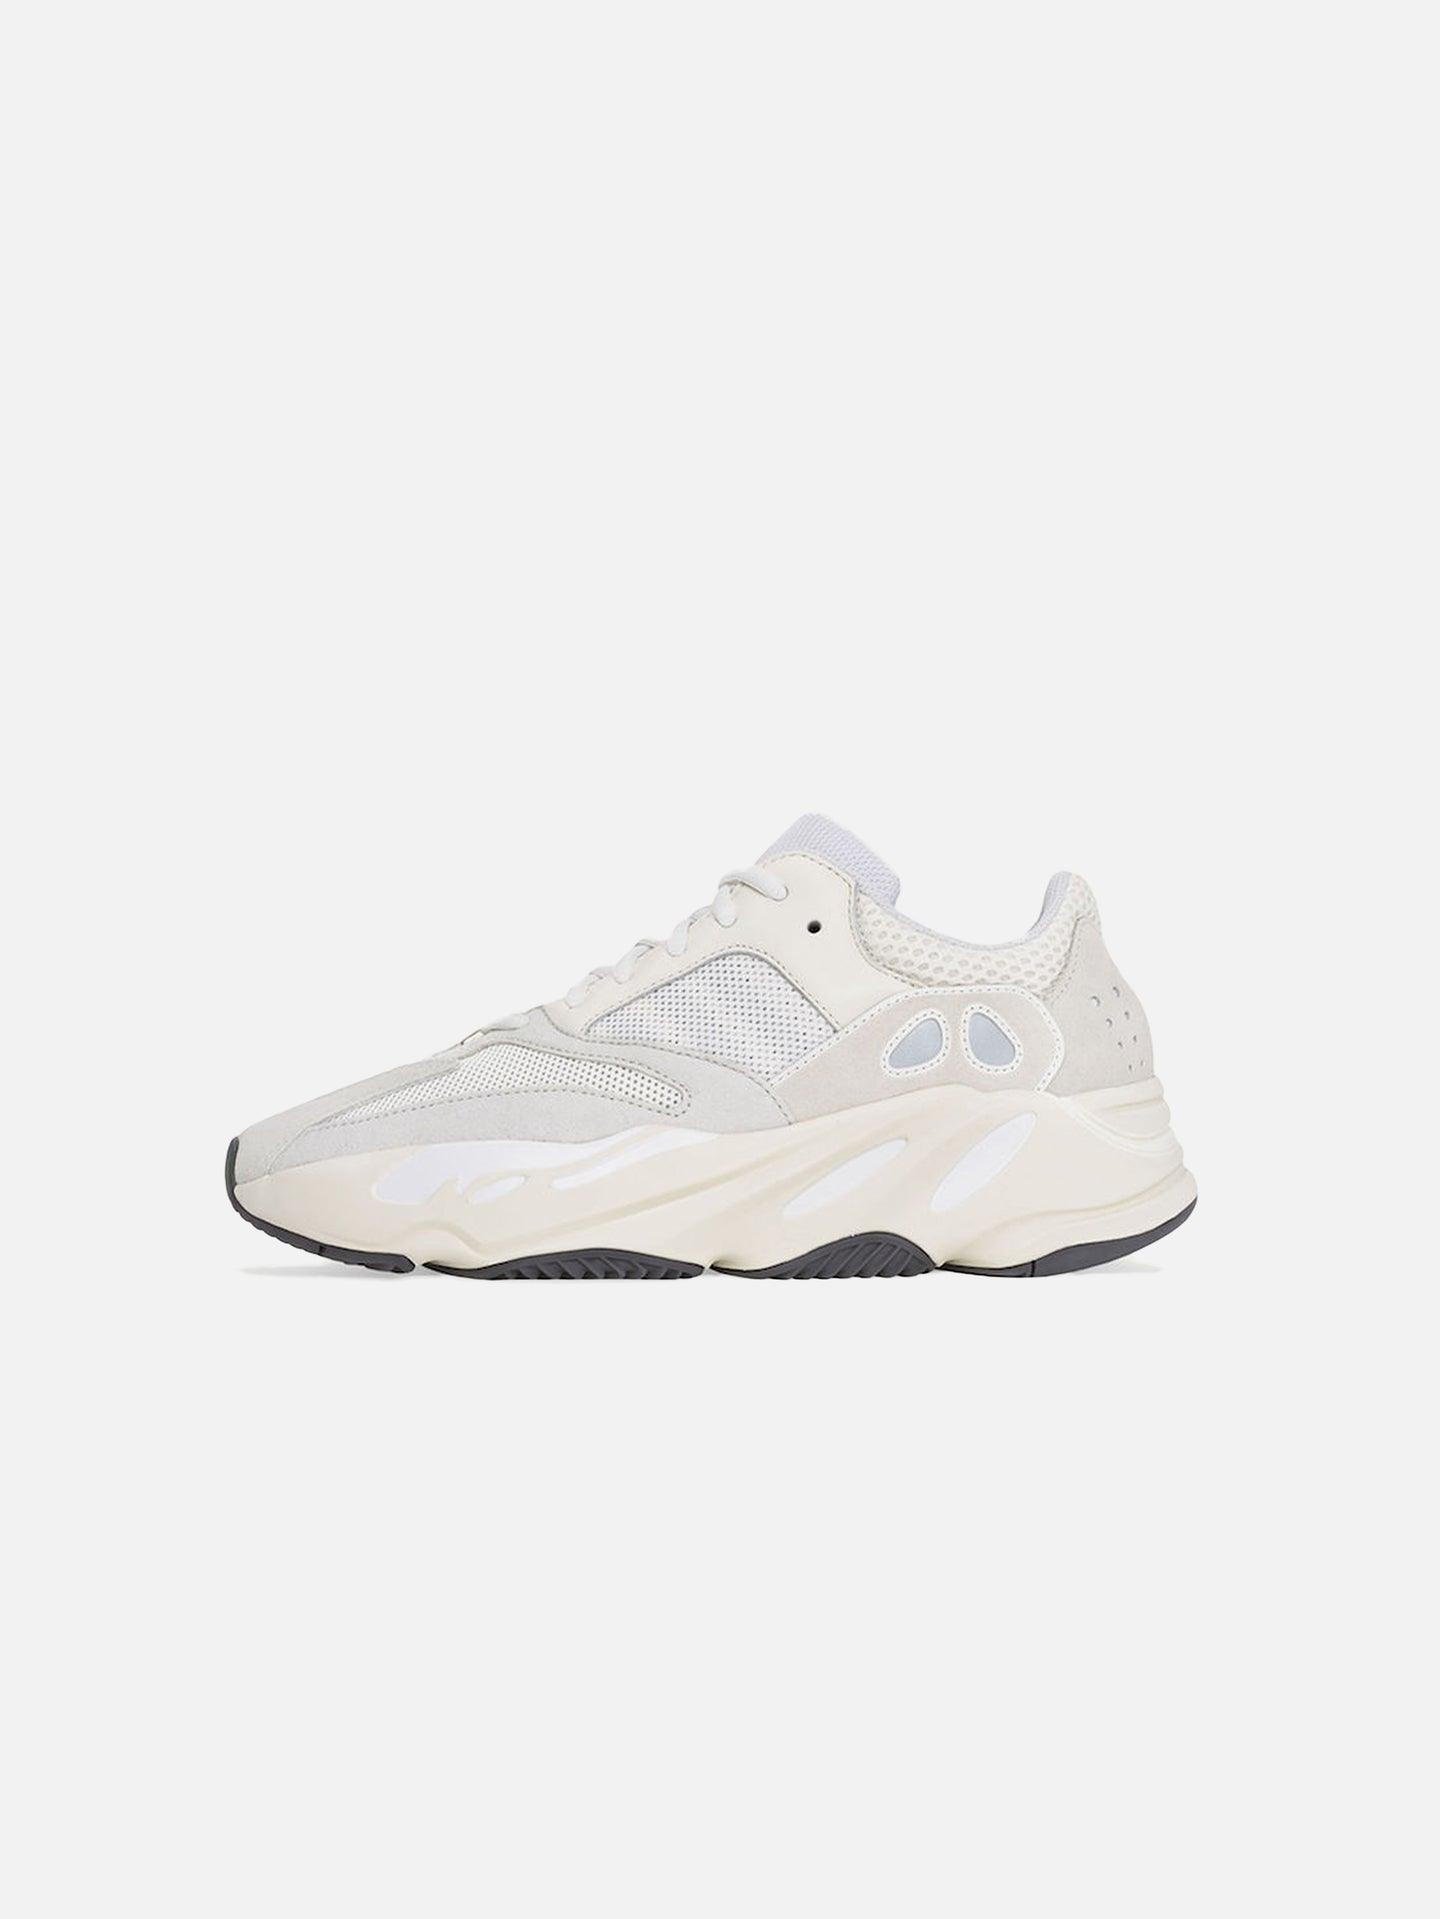 YEEZY BOOST 700: ANALOG (W)